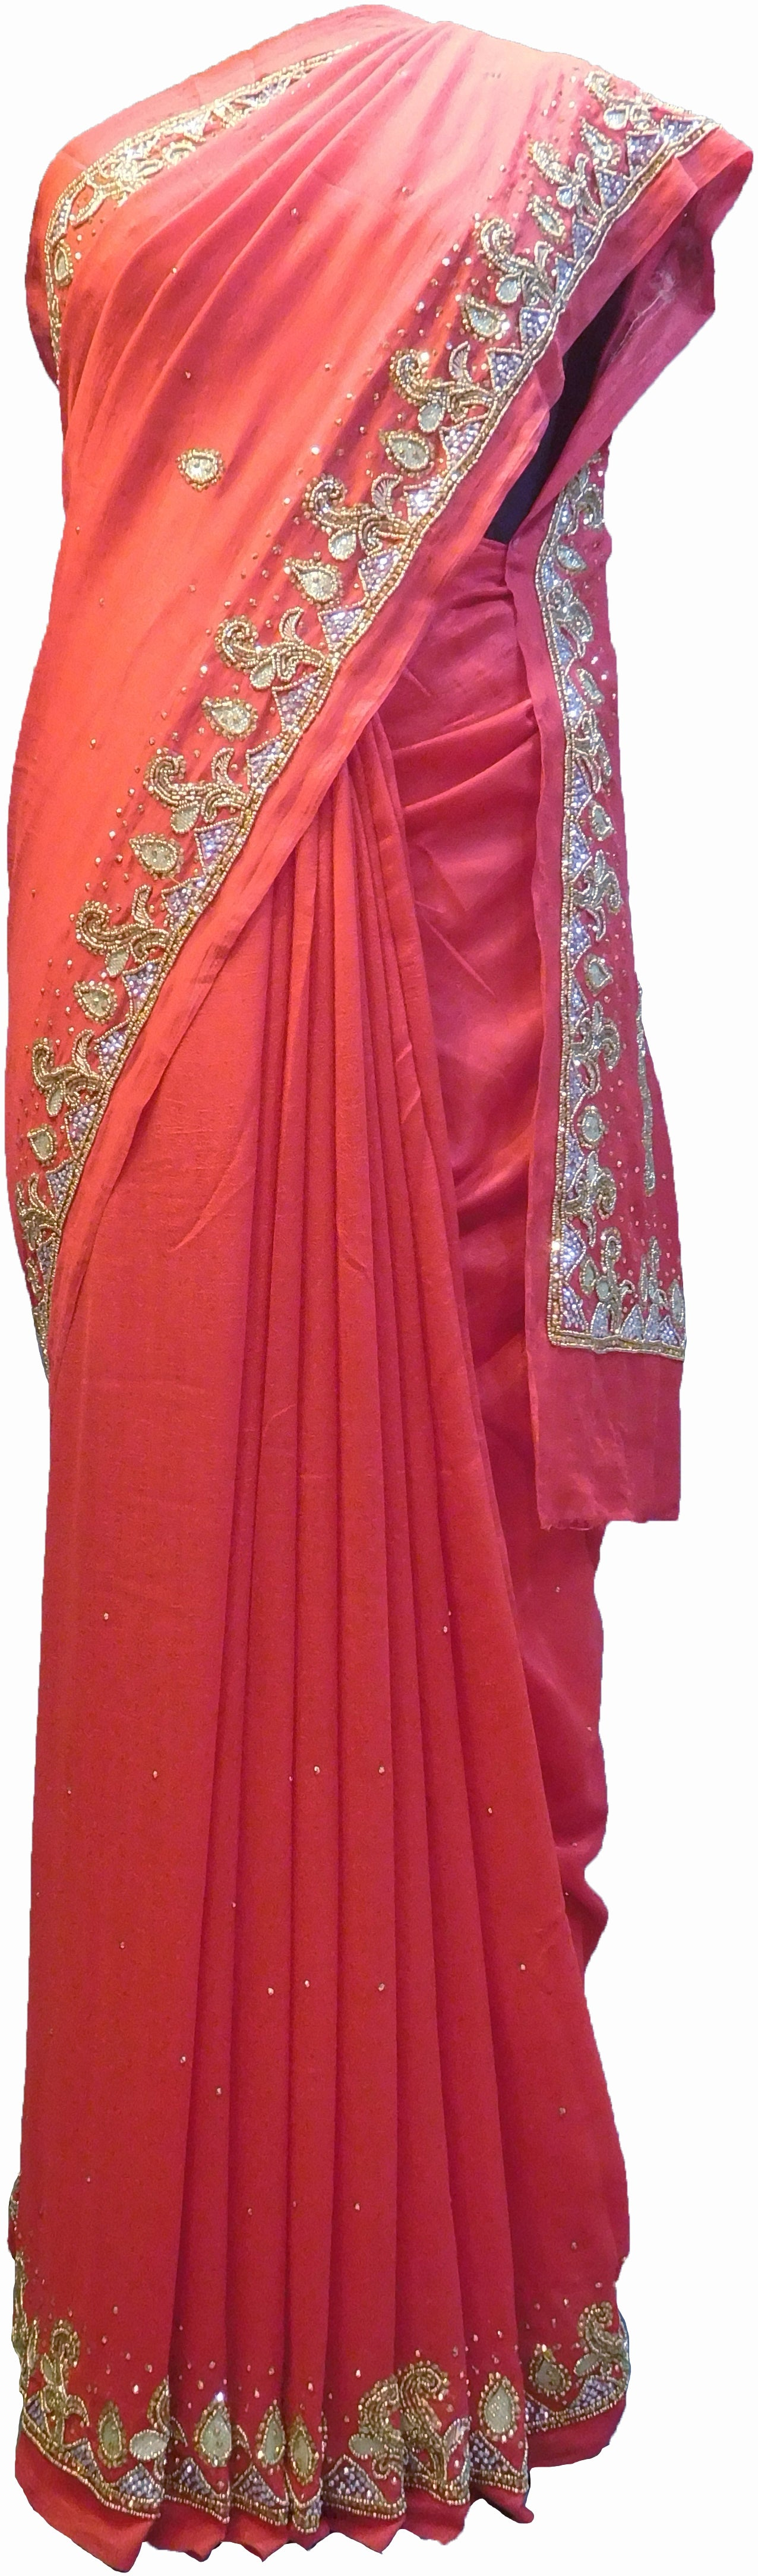 SMSAREE Red Designer Wedding Partywear Silk (Vichitra) Zari Cutdana Thread Beads & Stone Hand Embroidery Work Bridal Saree Sari With Blouse Piece F190